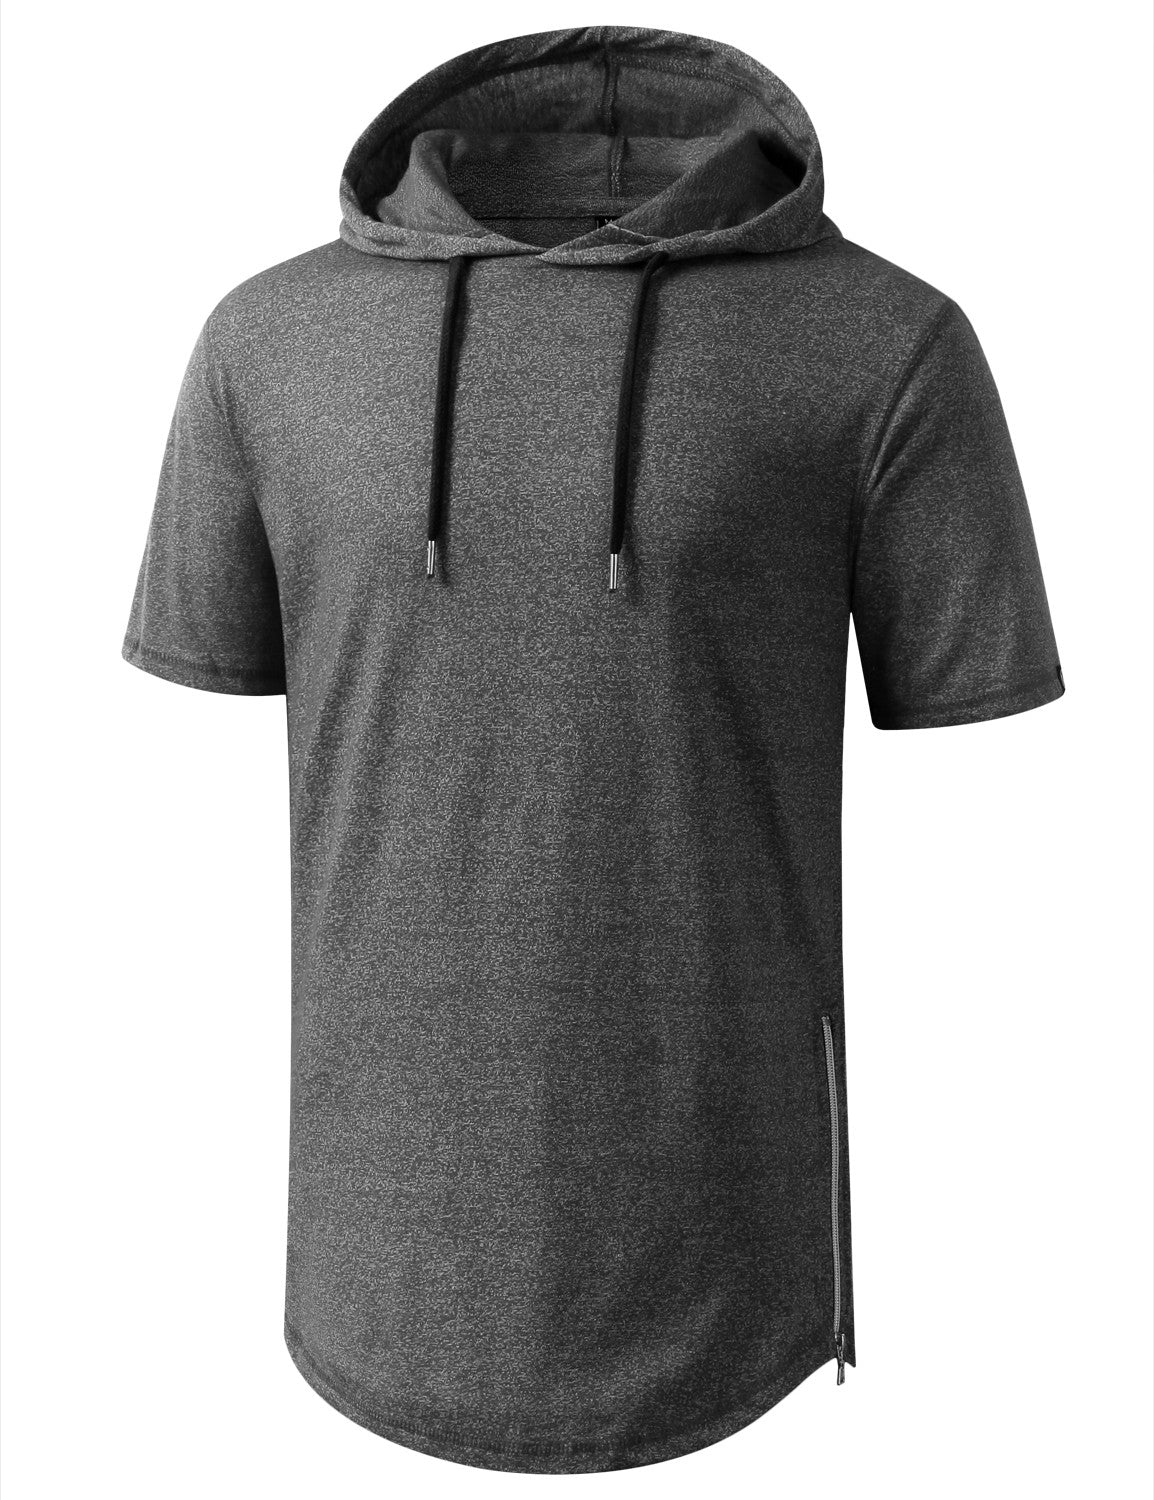 MARLEDBLACK Longline Short Sleeve Hoodie with Side Zipper